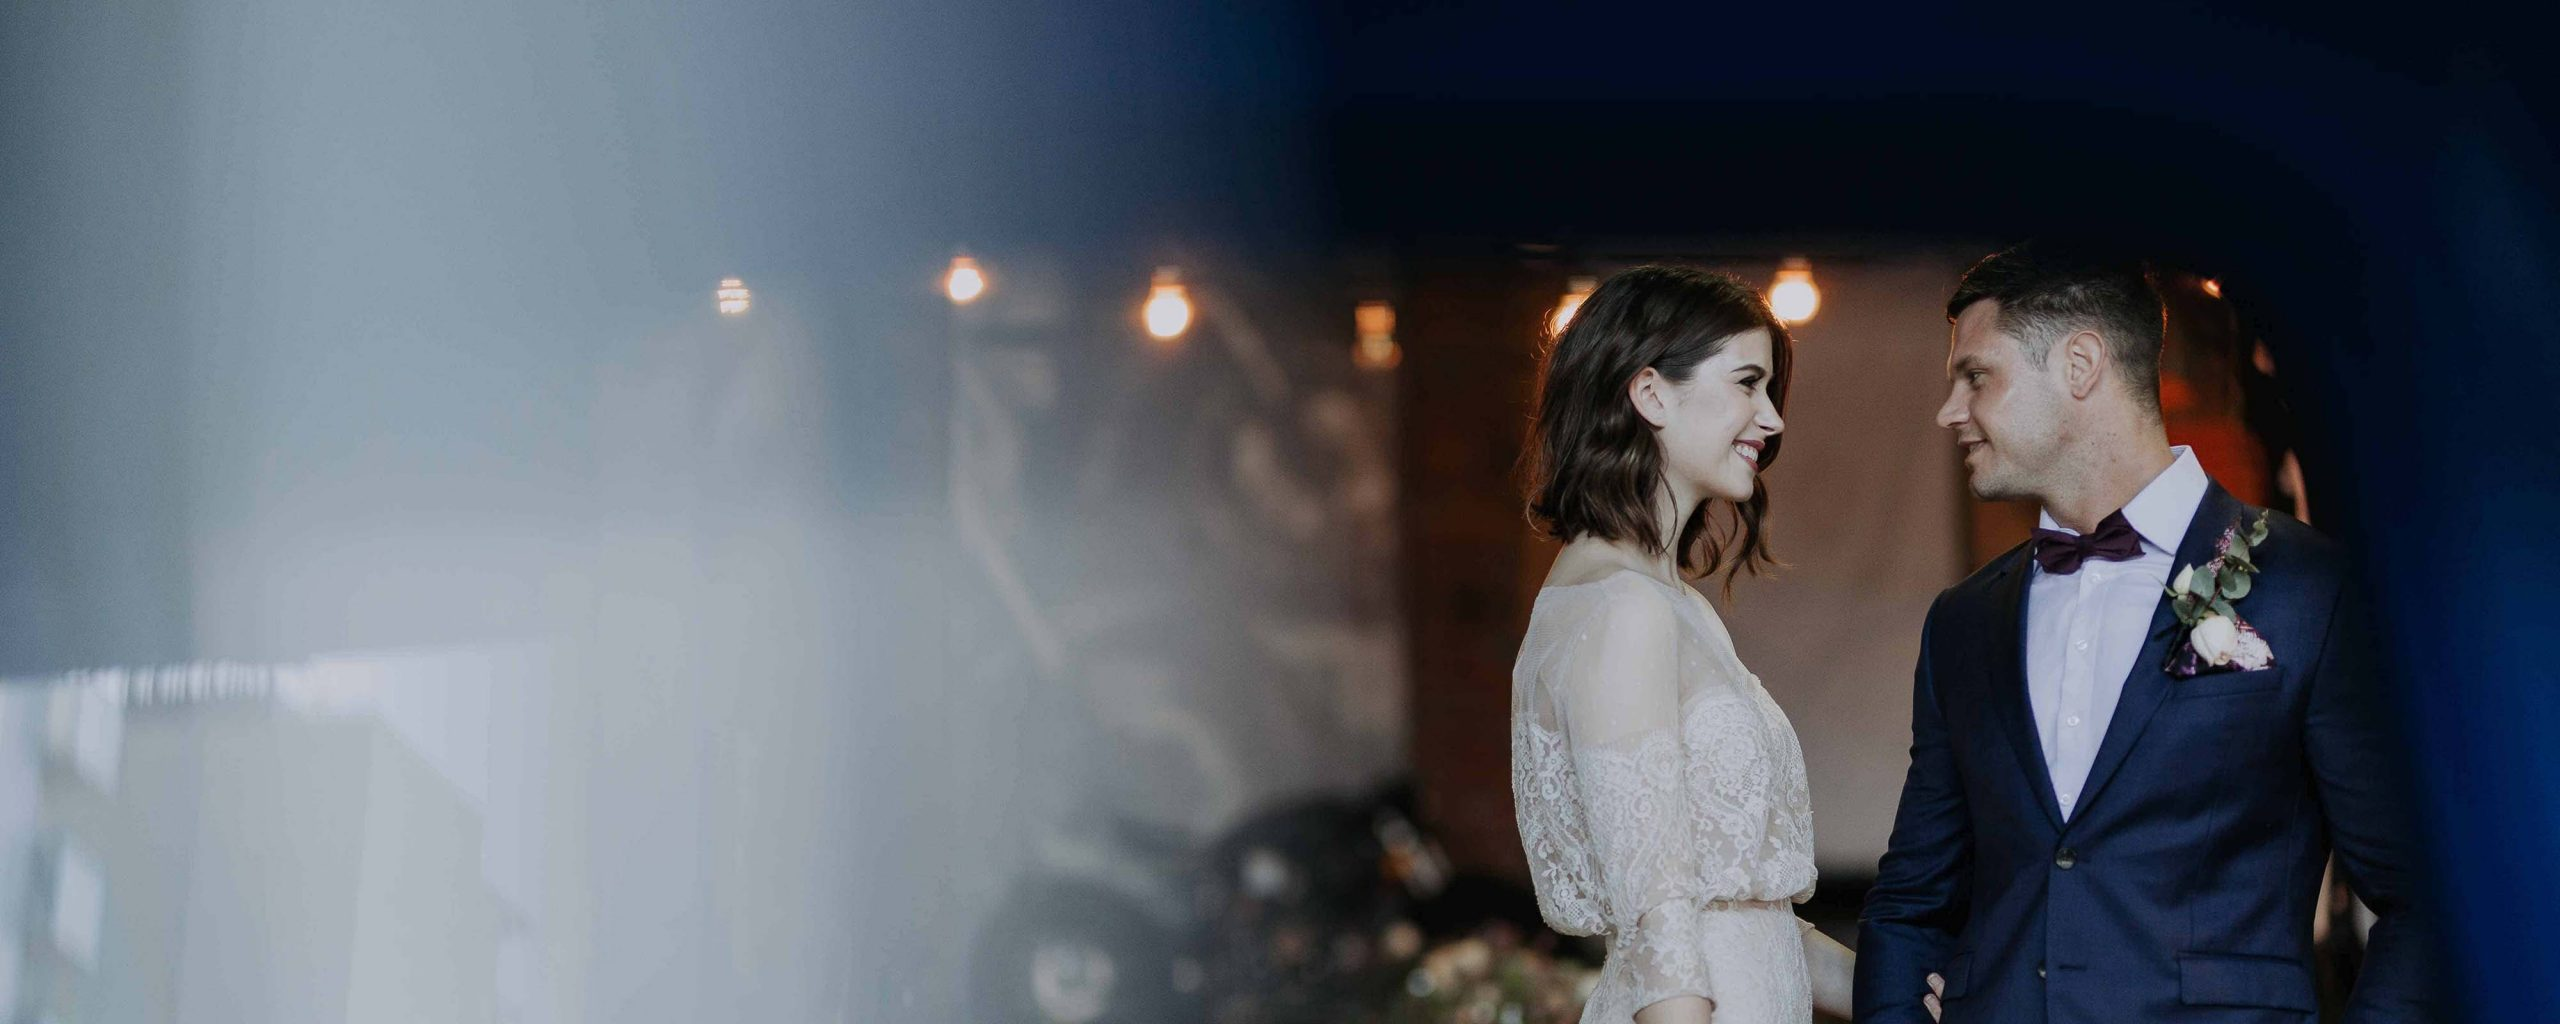 Smoked Garage Brisbane Weddings & Events